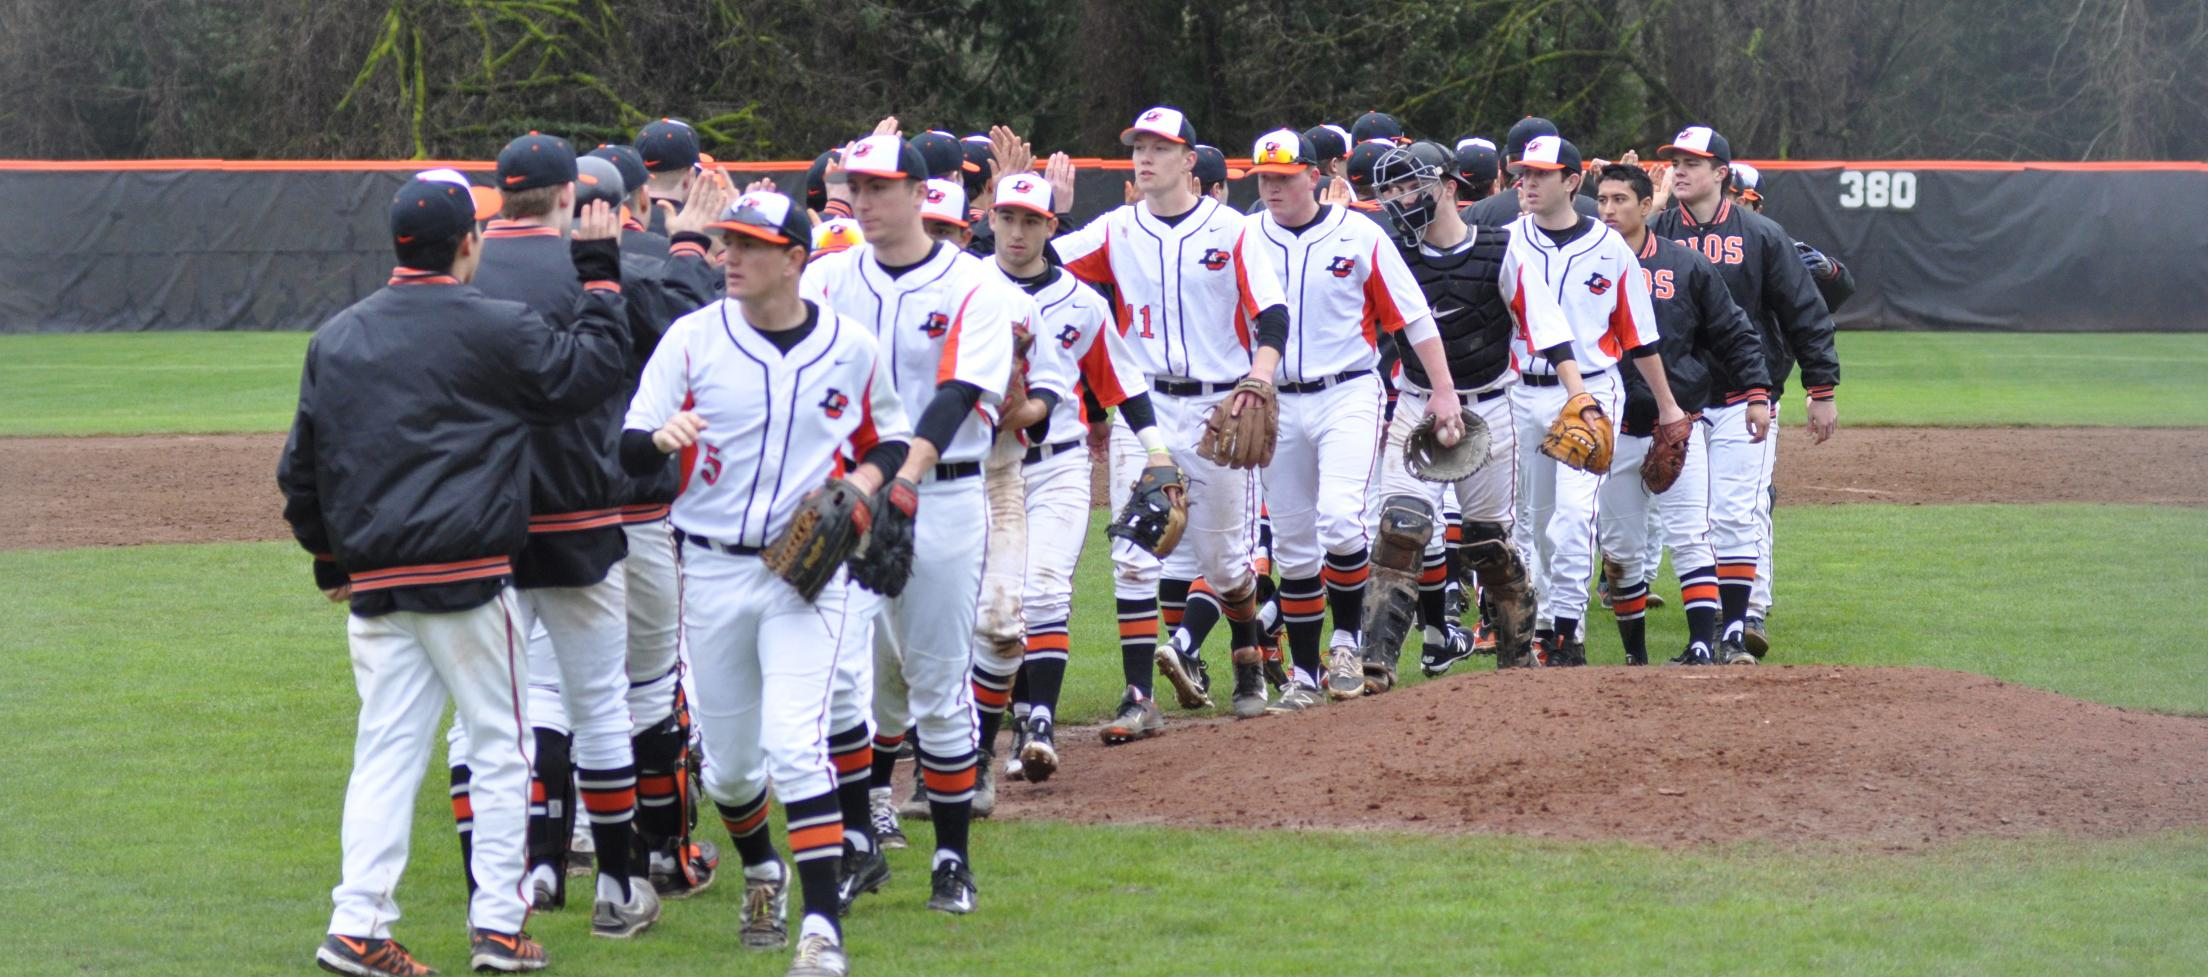 Pioneers drop third game, take series from Puget Sound